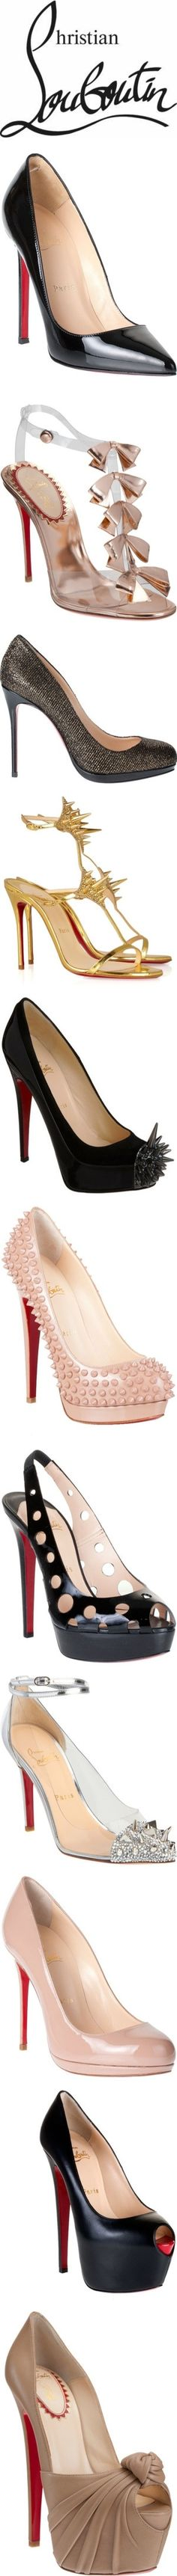 Who doesn't love Louboutin?! by Miss Moofy